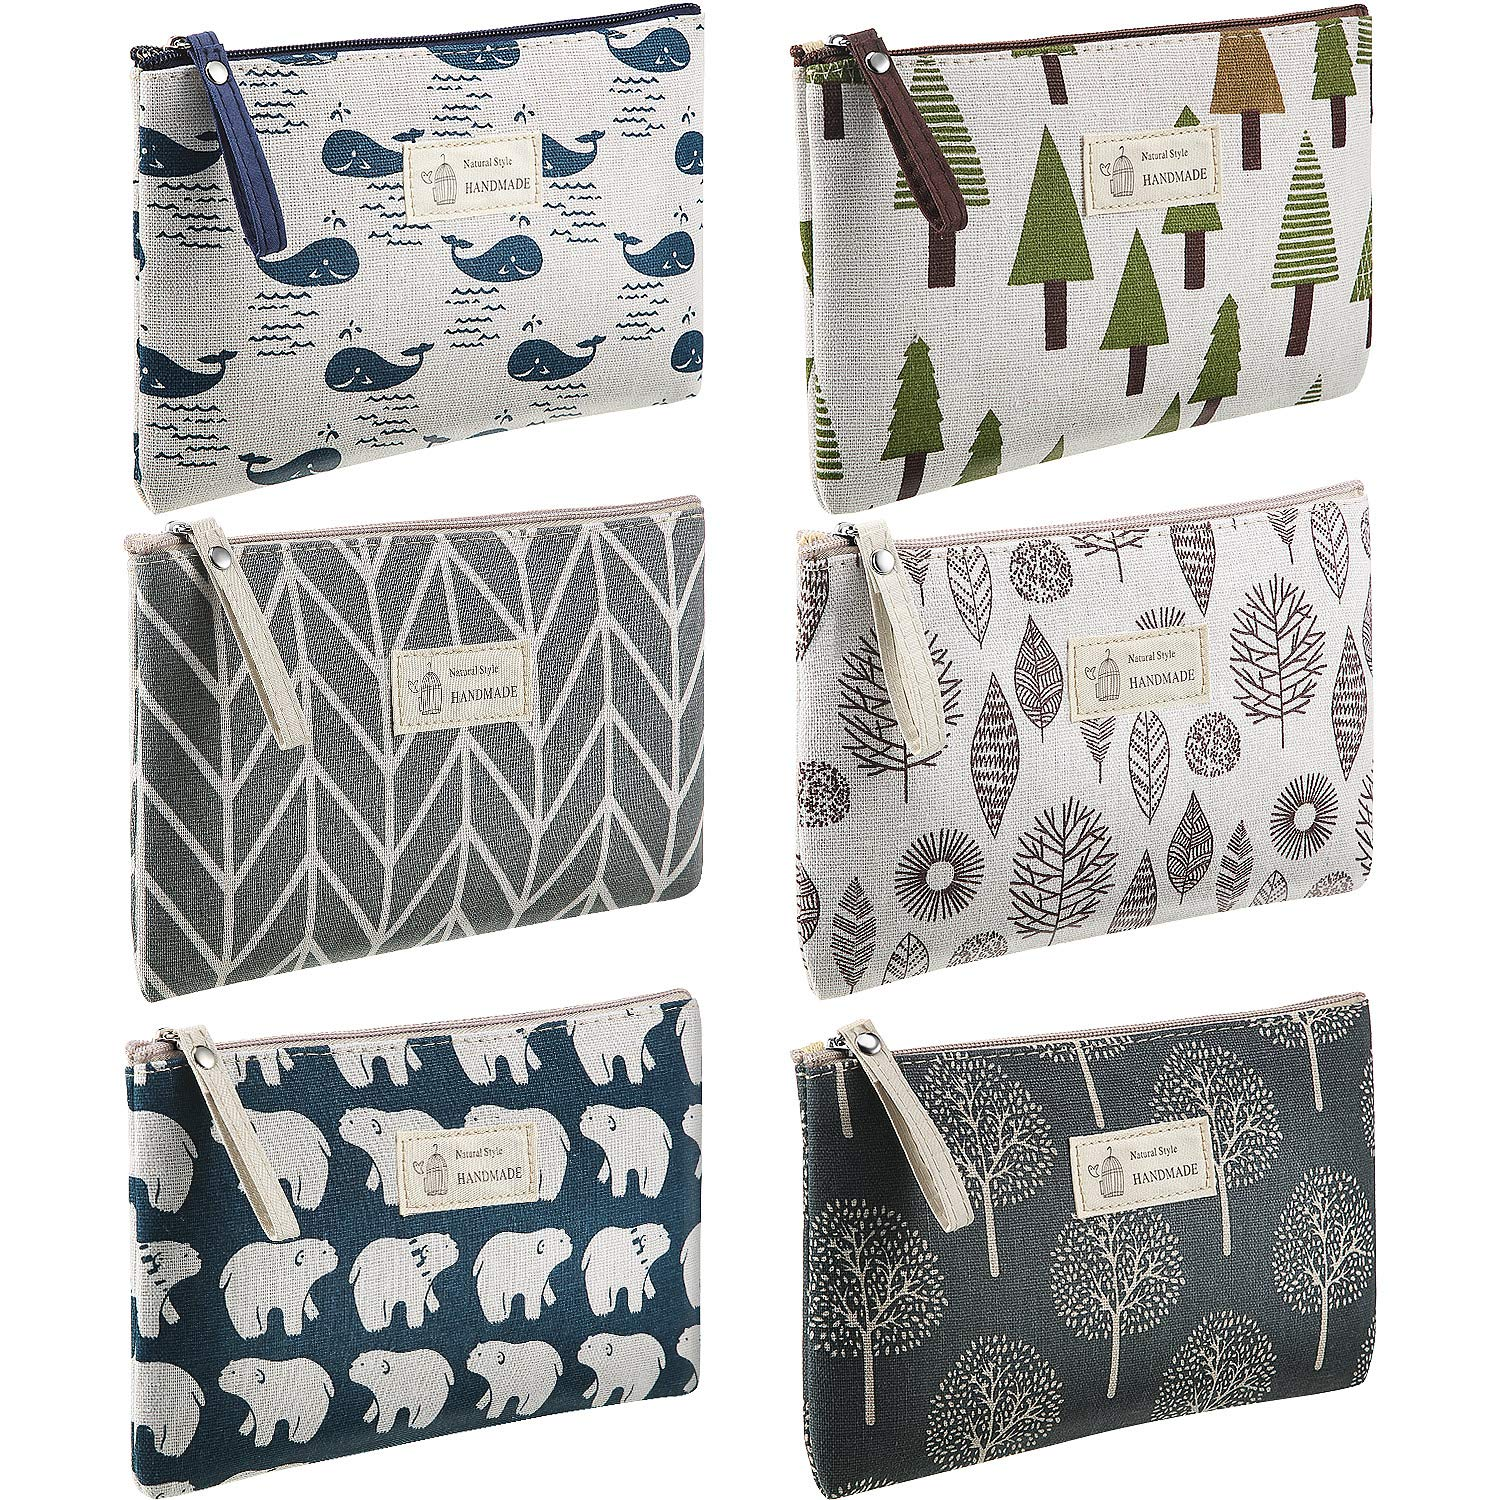 6 Pieces Printed Canvas Cosmetic Bags Large Capacity Travel Makeup Bag Casual Multi-function Roomy Toiletry Organizer Pouch Handbags with Zipper for Women, 6 Styles